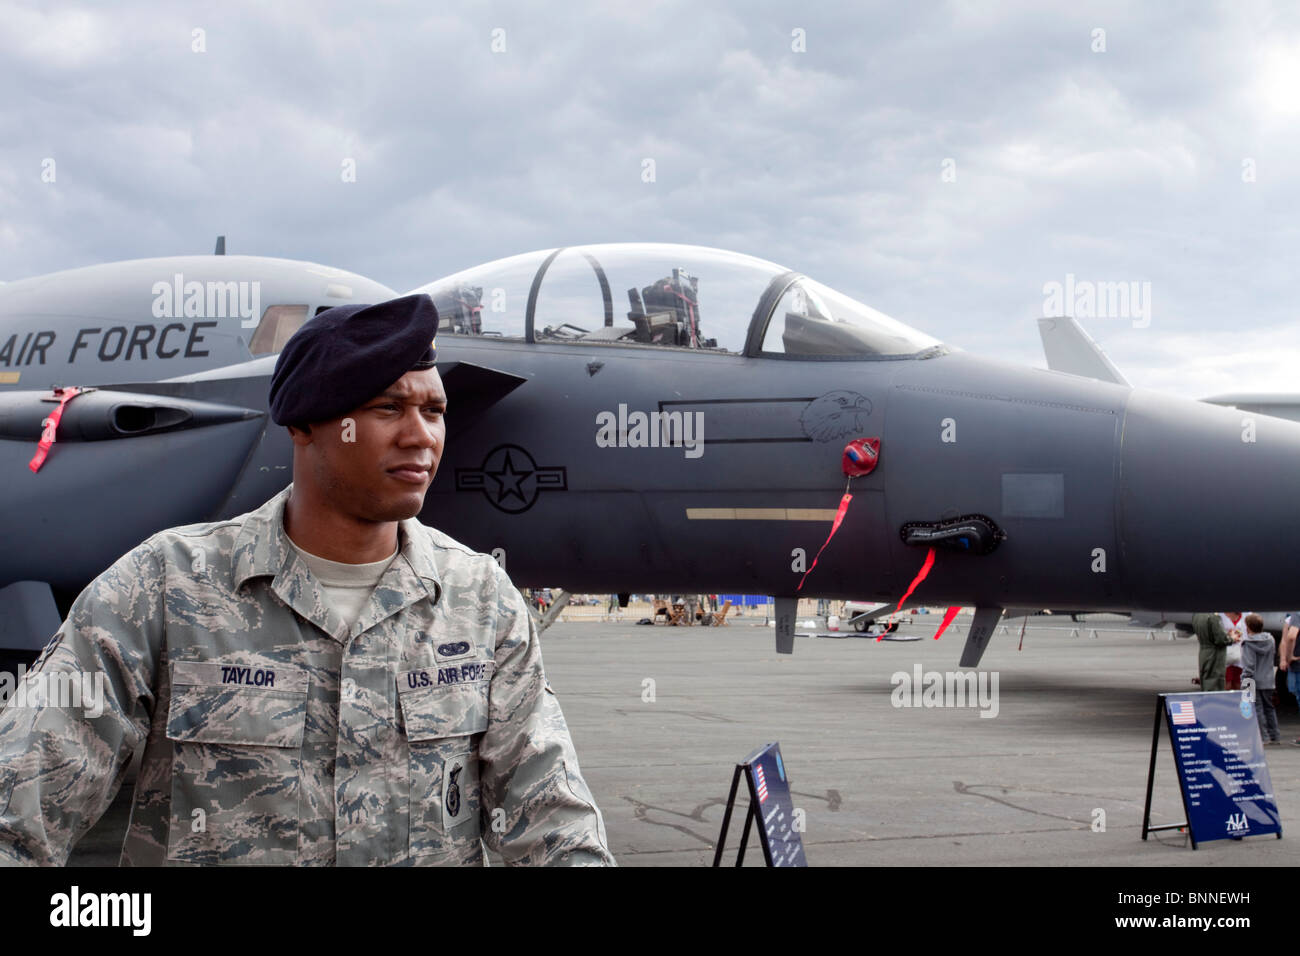 us air force fighter jet at air show in the uk. personnel Taylor. - Stock Image